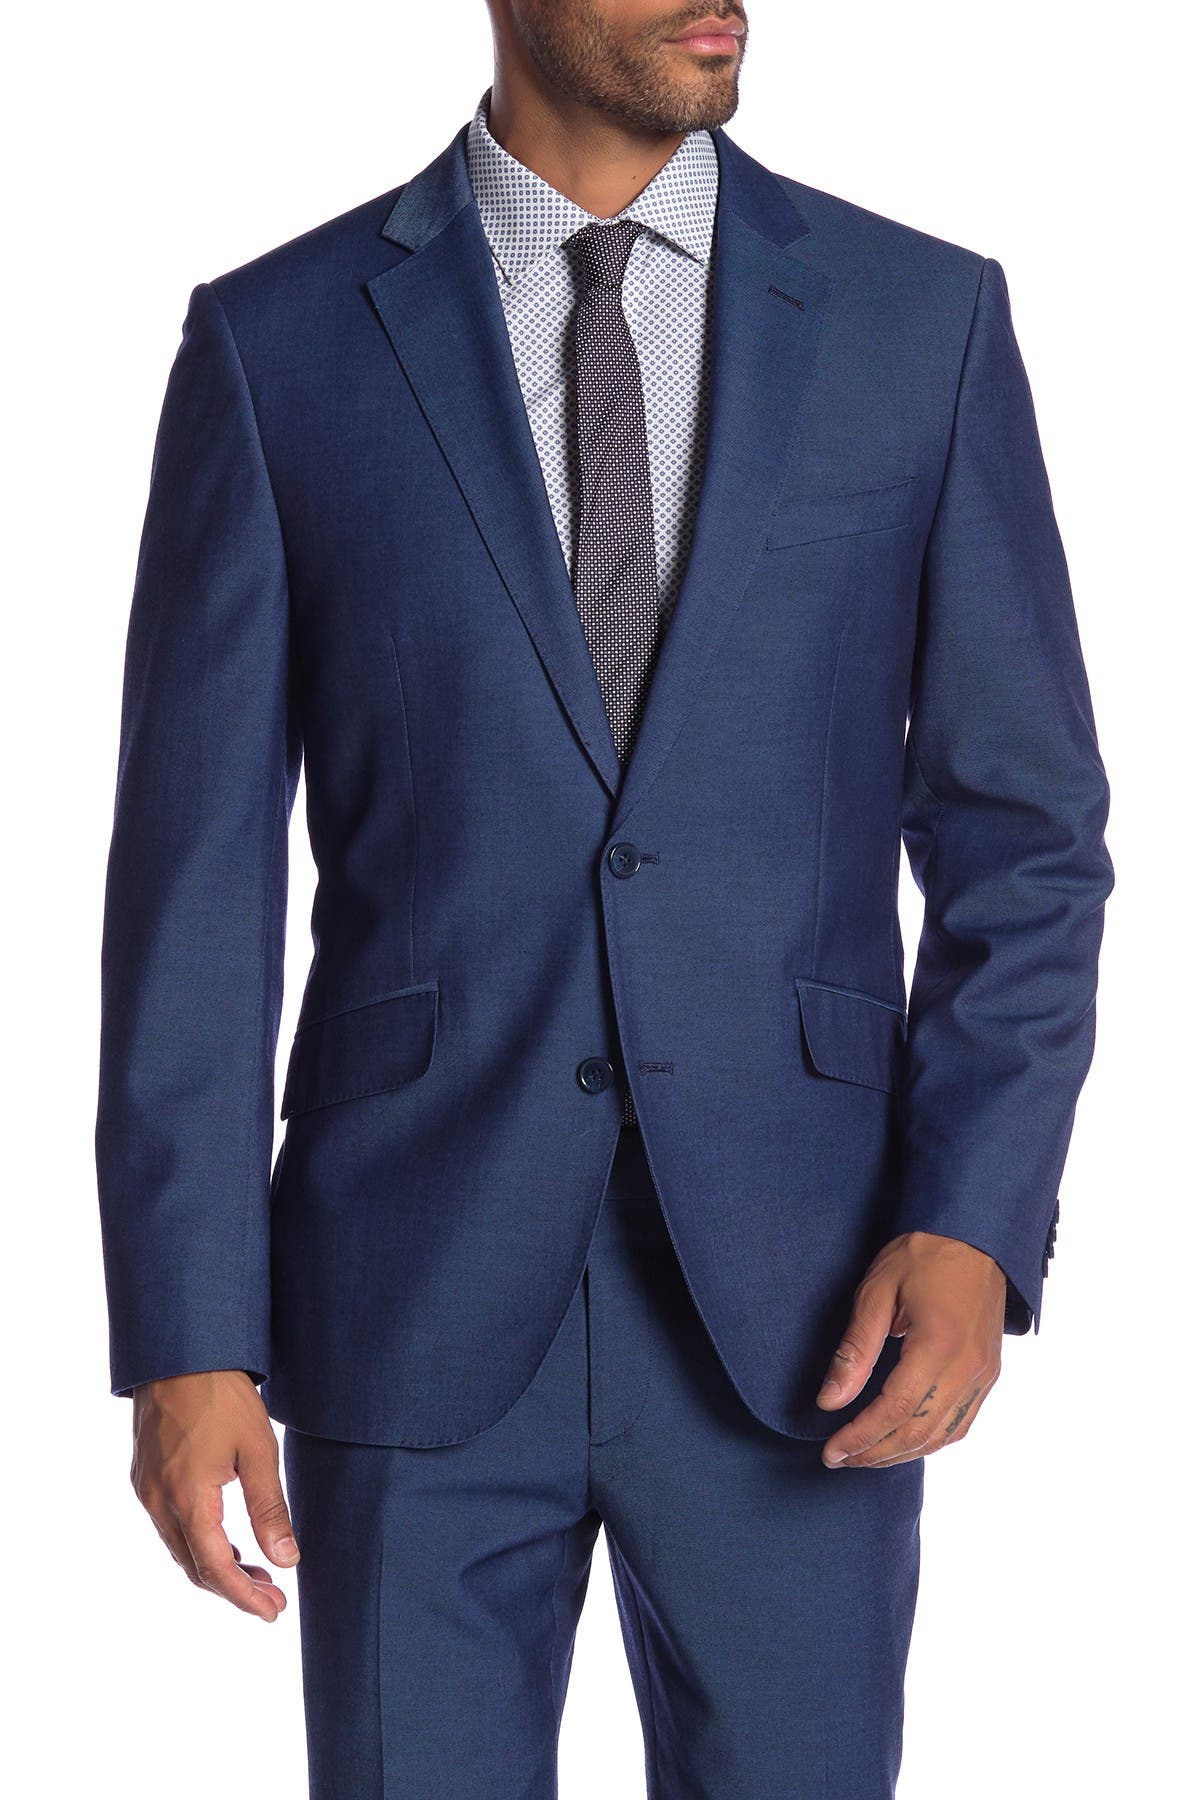 Image of SAVILE ROW CO Mayfair Blue Two Button Notch Lapel Modern Fit Gab Suit Separate Jacket